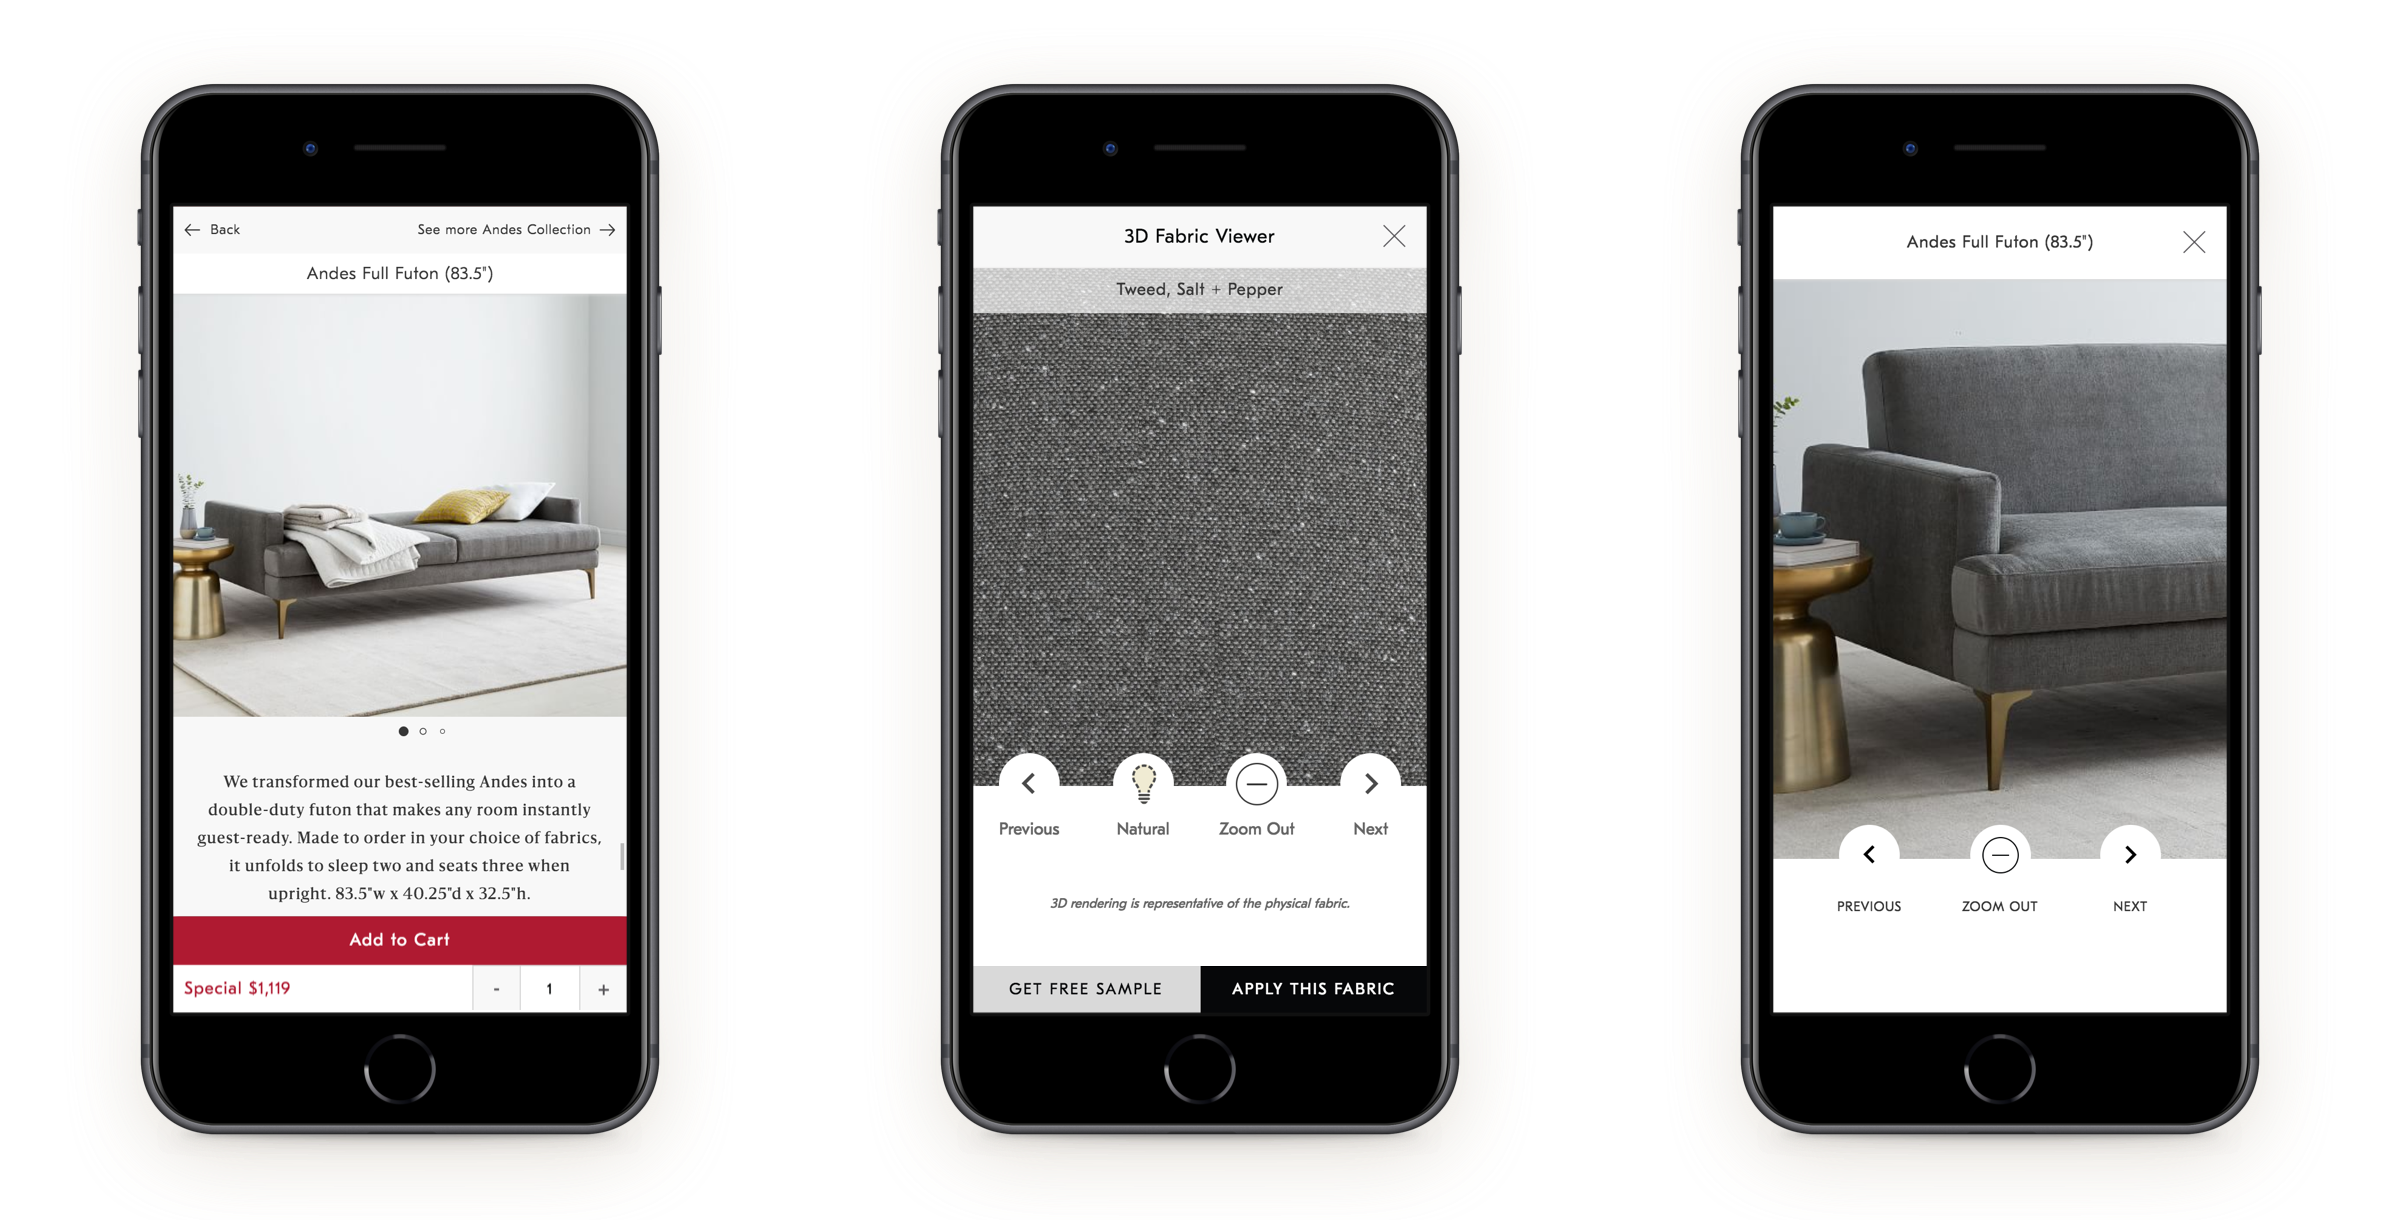 The product detail page for West Elm on Mobile. Views: Hero image, 3D fabric viewer, and zoom.